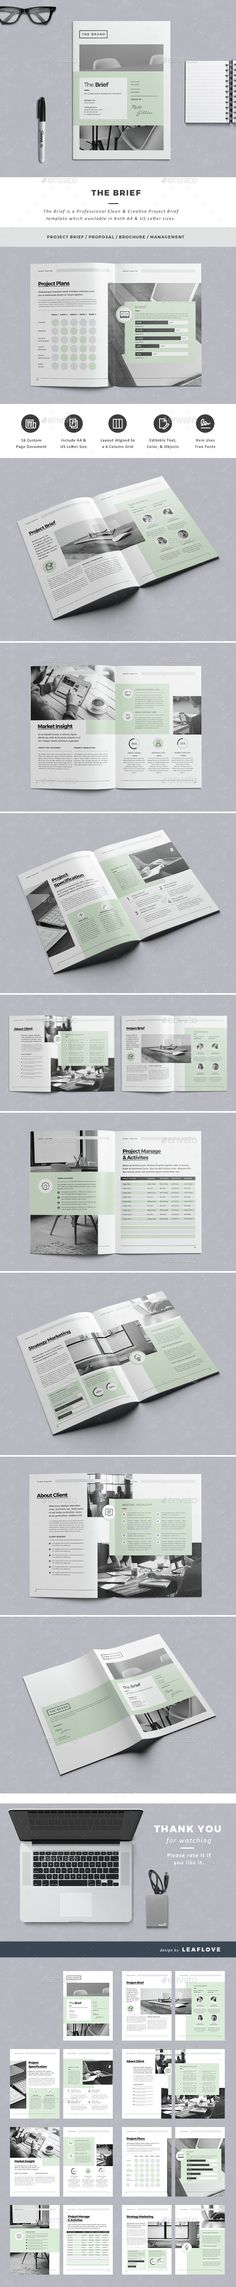 The Brief Brochure Template InDesign INDD. Download here: http://graphicriver.net/item/the-brief/14583467?ref=ksioks